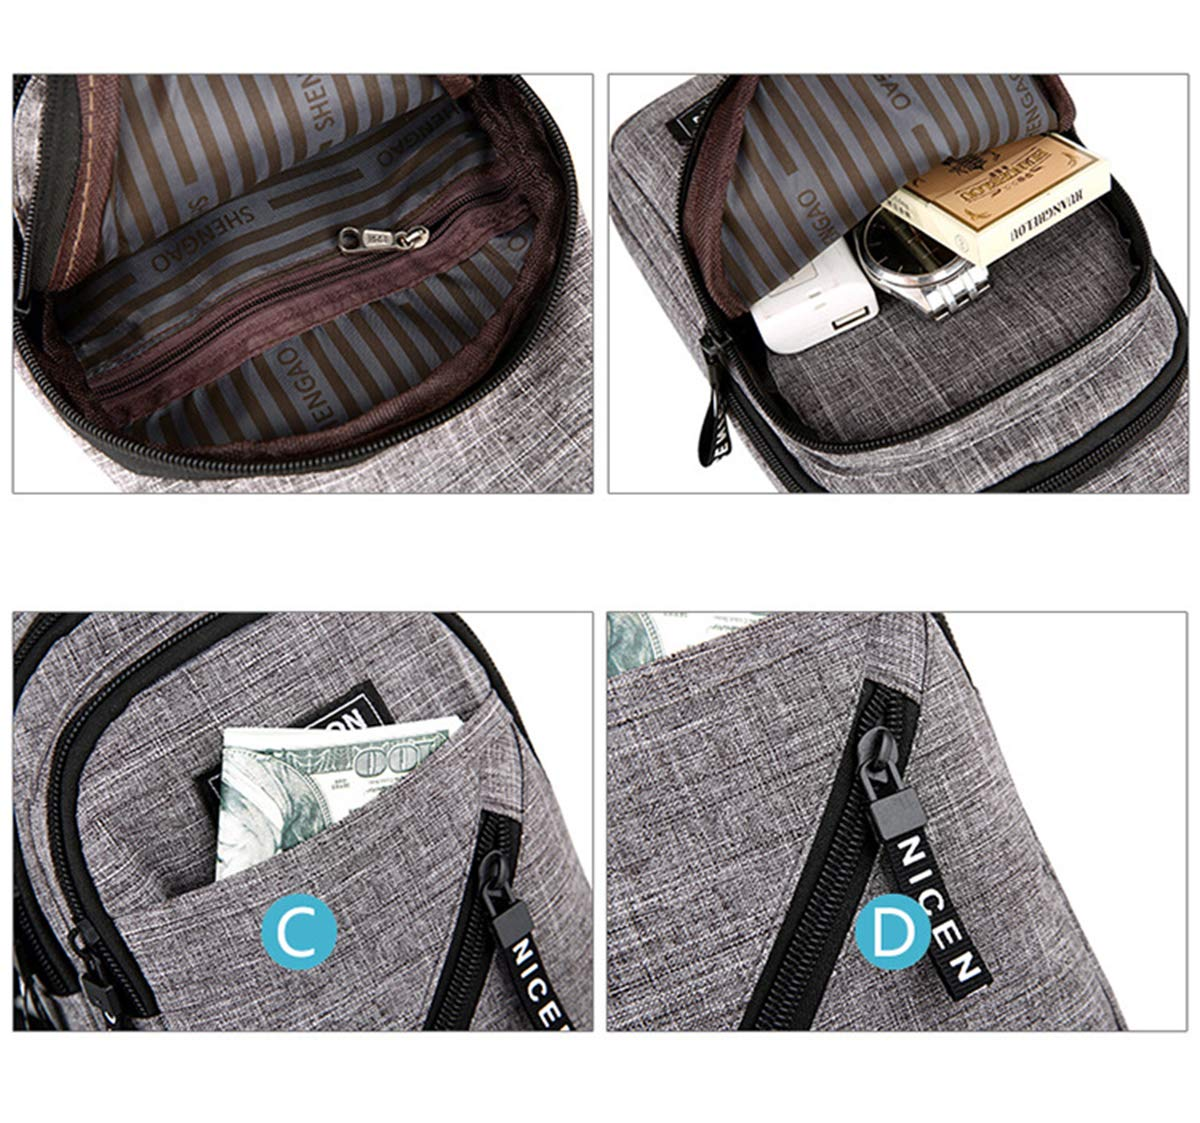 FUOE Sling Bag Crossbody Bag Shoulder Chest Back Pack Anti Theft Travel Bags (Style2-Black) by FUOE (Image #4)